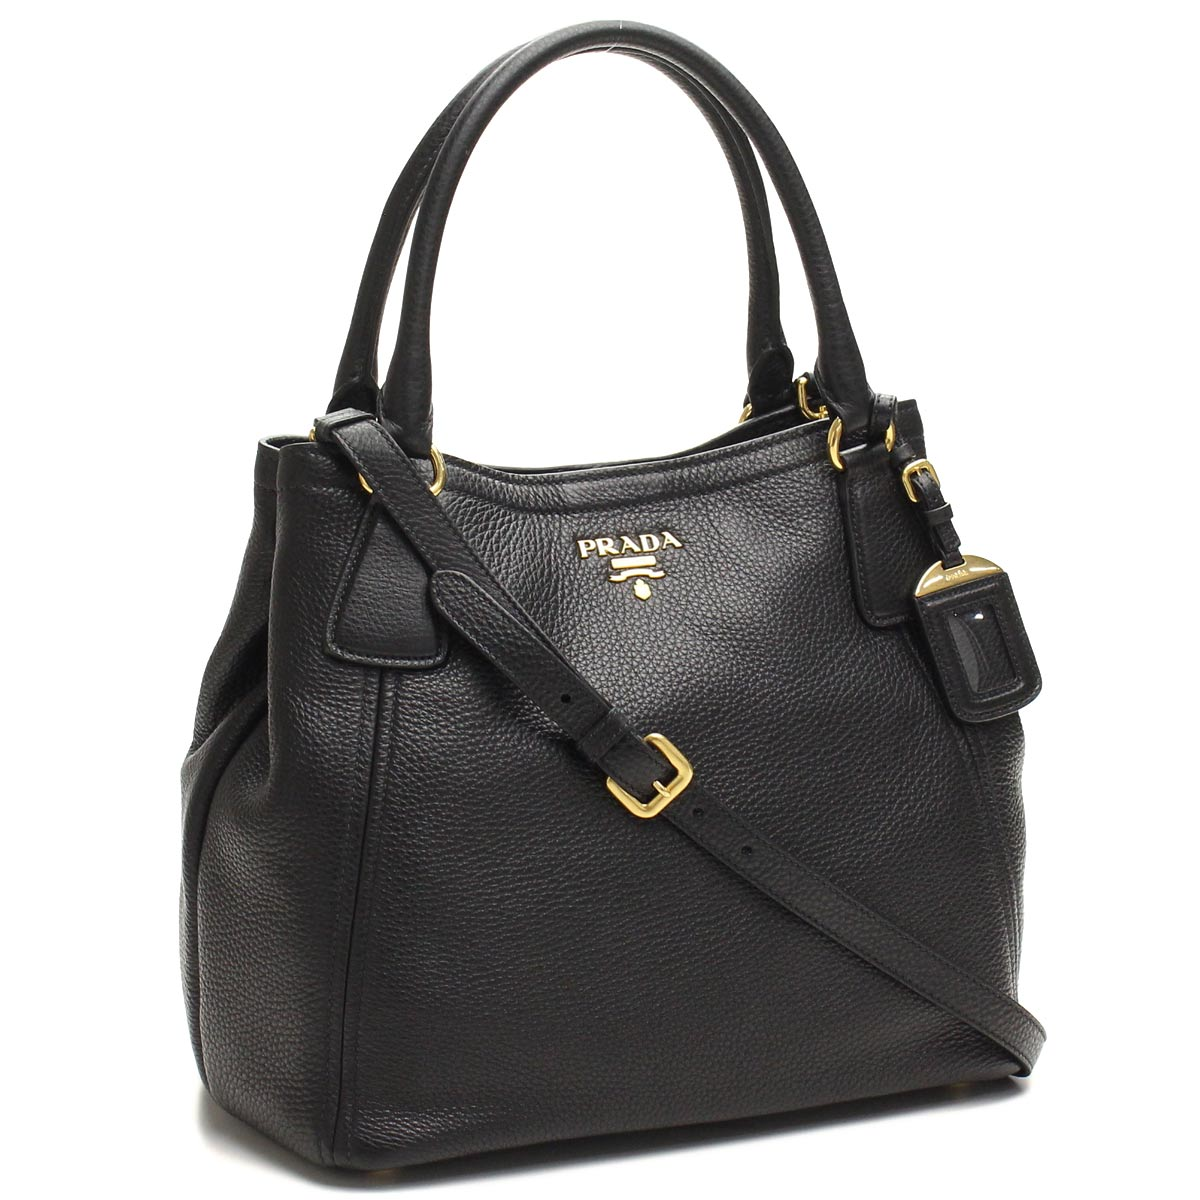 4ea6d6c69ade Bighit The total brand wholesale  Prada outlet PRADA (OUTLET) tote bag  BN2534-O-UWL-F0002 NERO black( taxfree send by EMS authentic A brand new  item ) ...